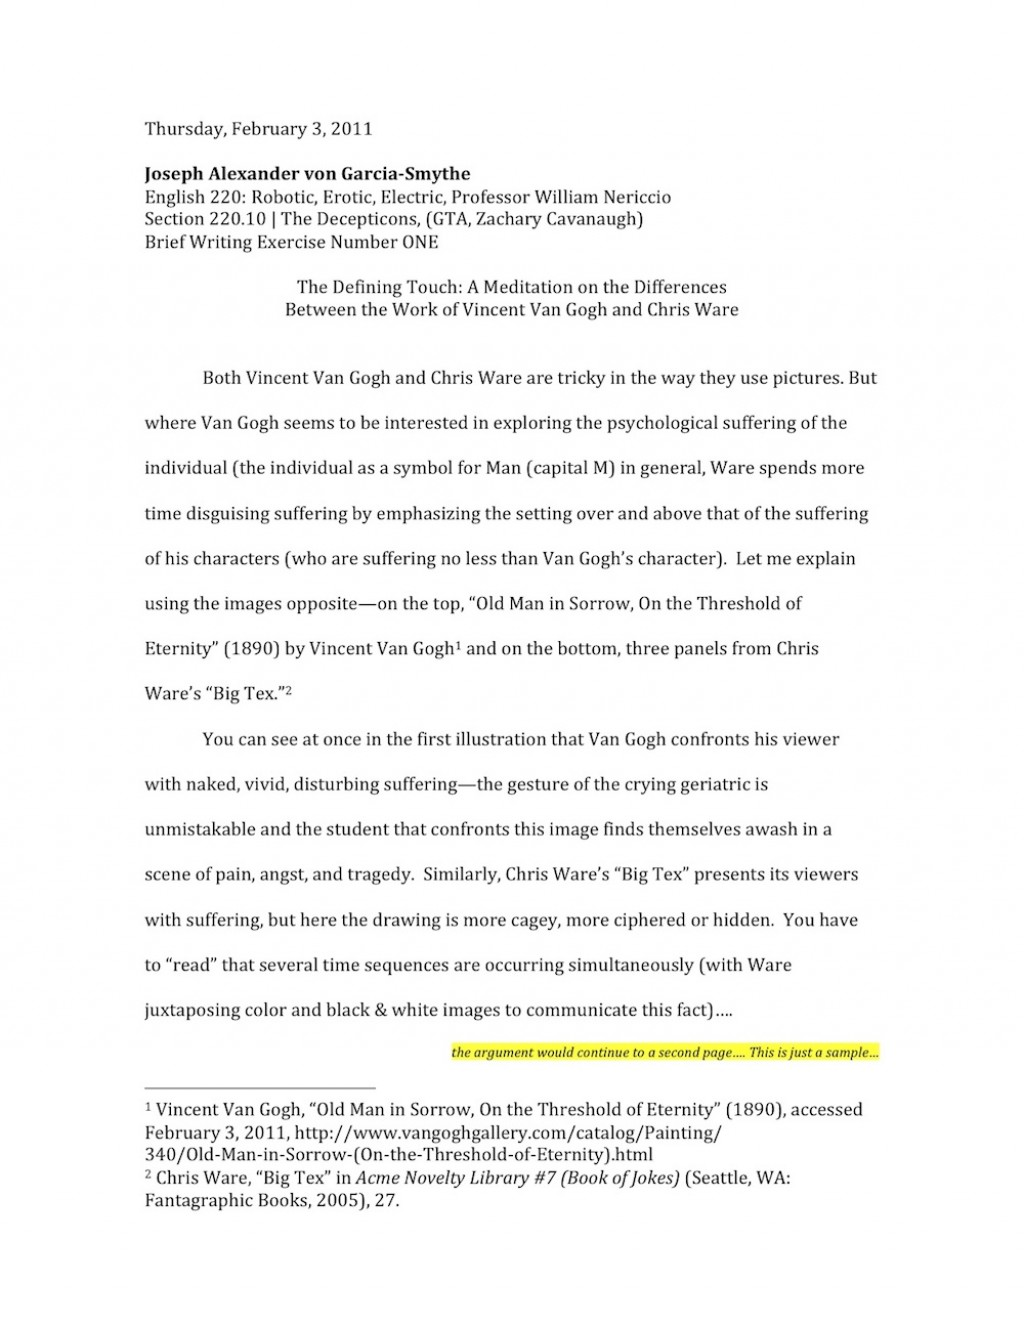 009 Essay Example Nericcio Sampleessay1 Unique Autobiography Of About Yourself Tagalog Bio For Students Large